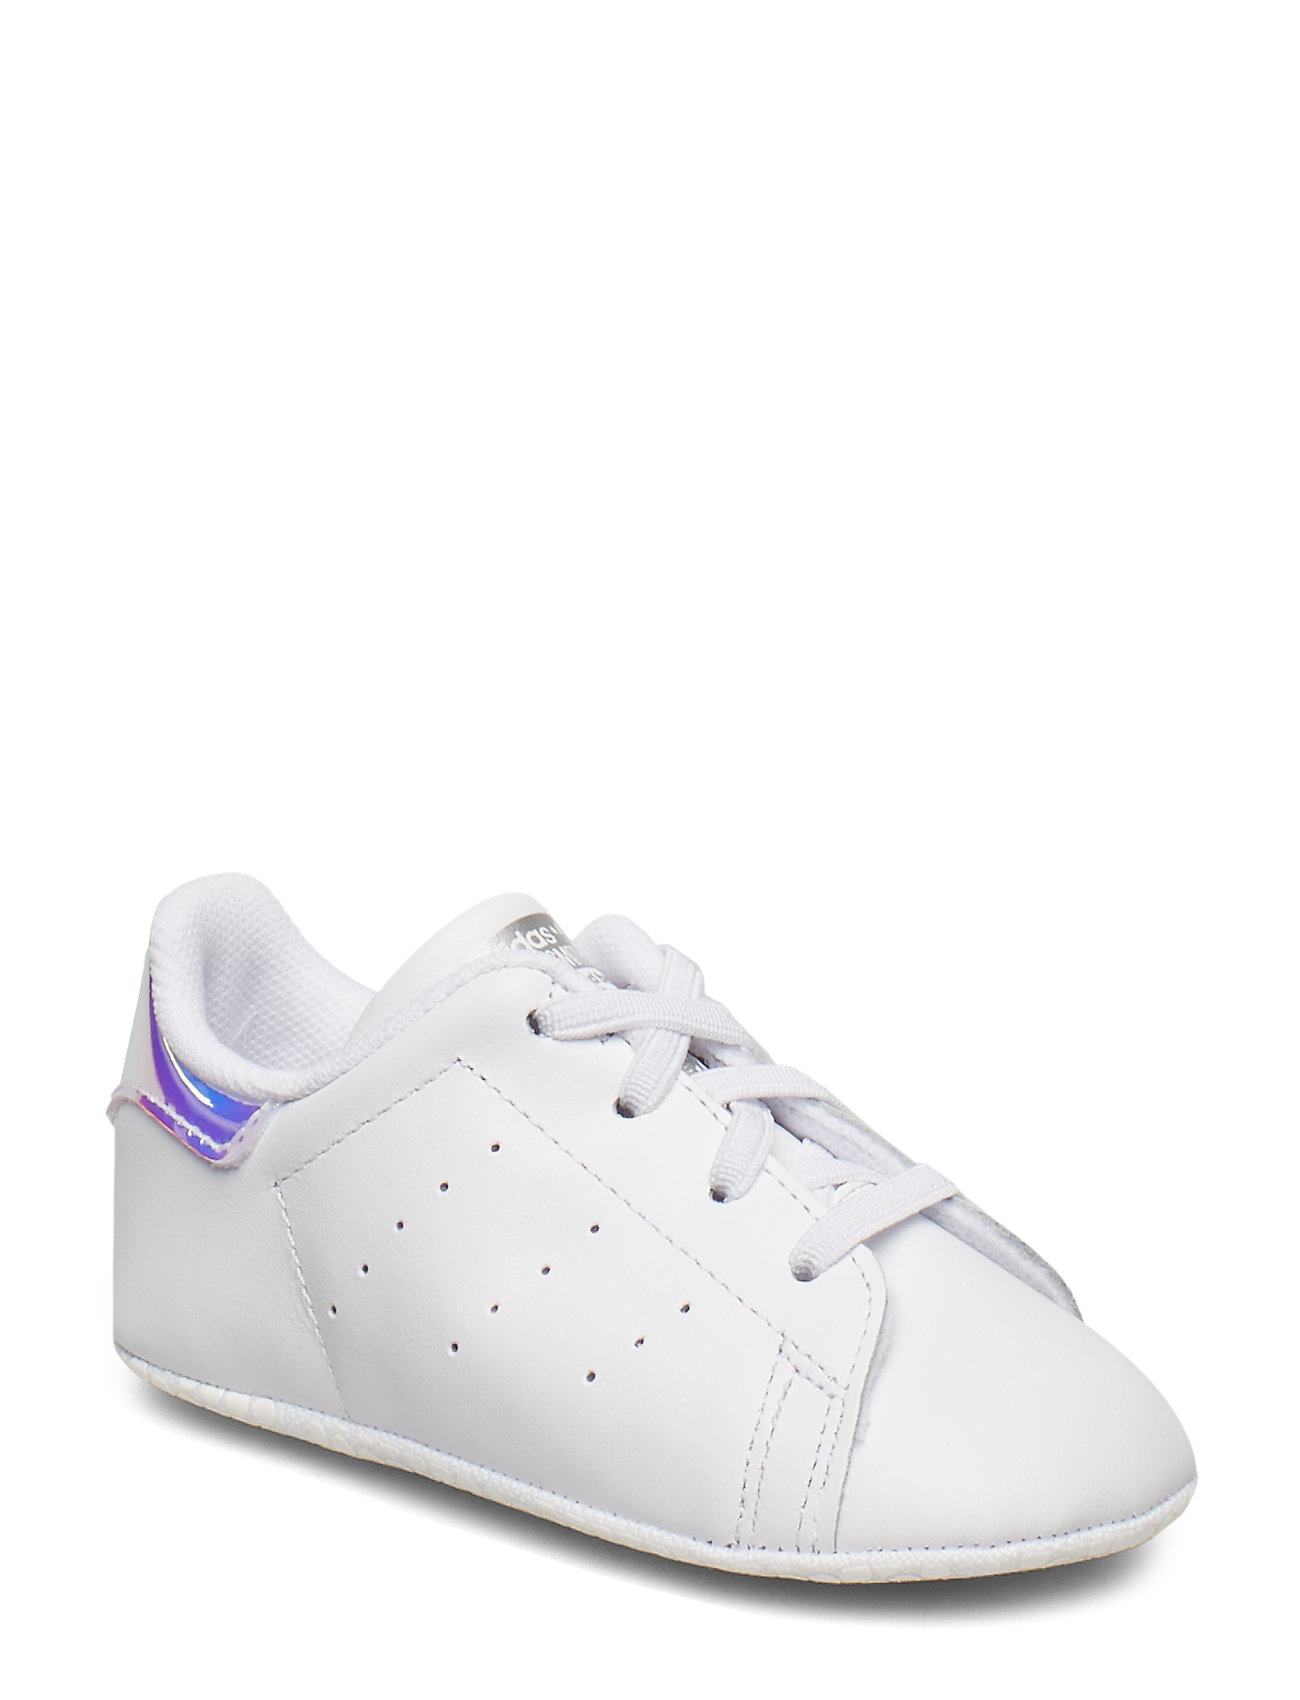 adidas Originals STAN SMITH CRIB - FTWWHT/FTWWHT/SILVMT